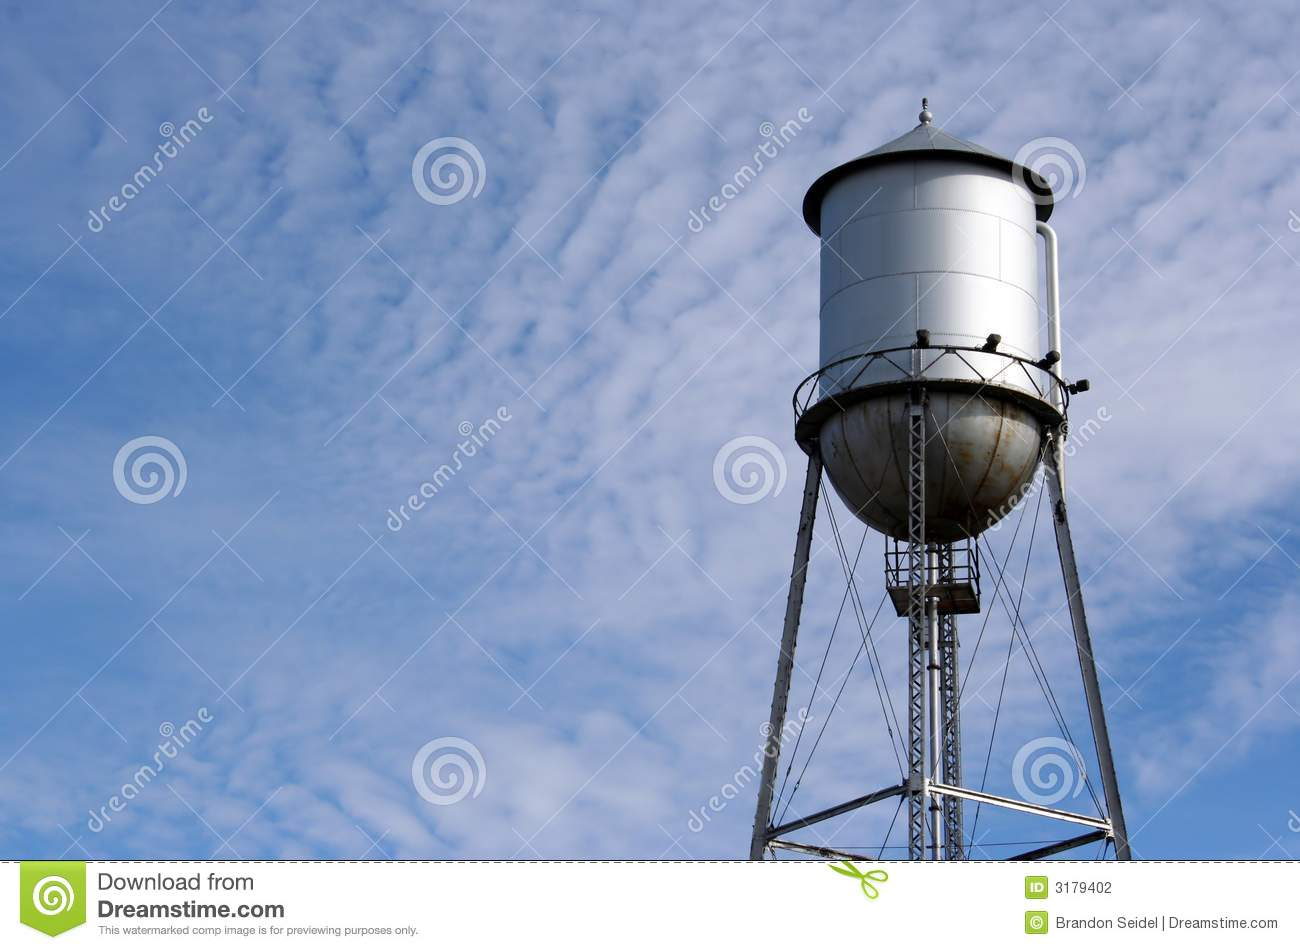 Water Tower on a Cloudy Sky